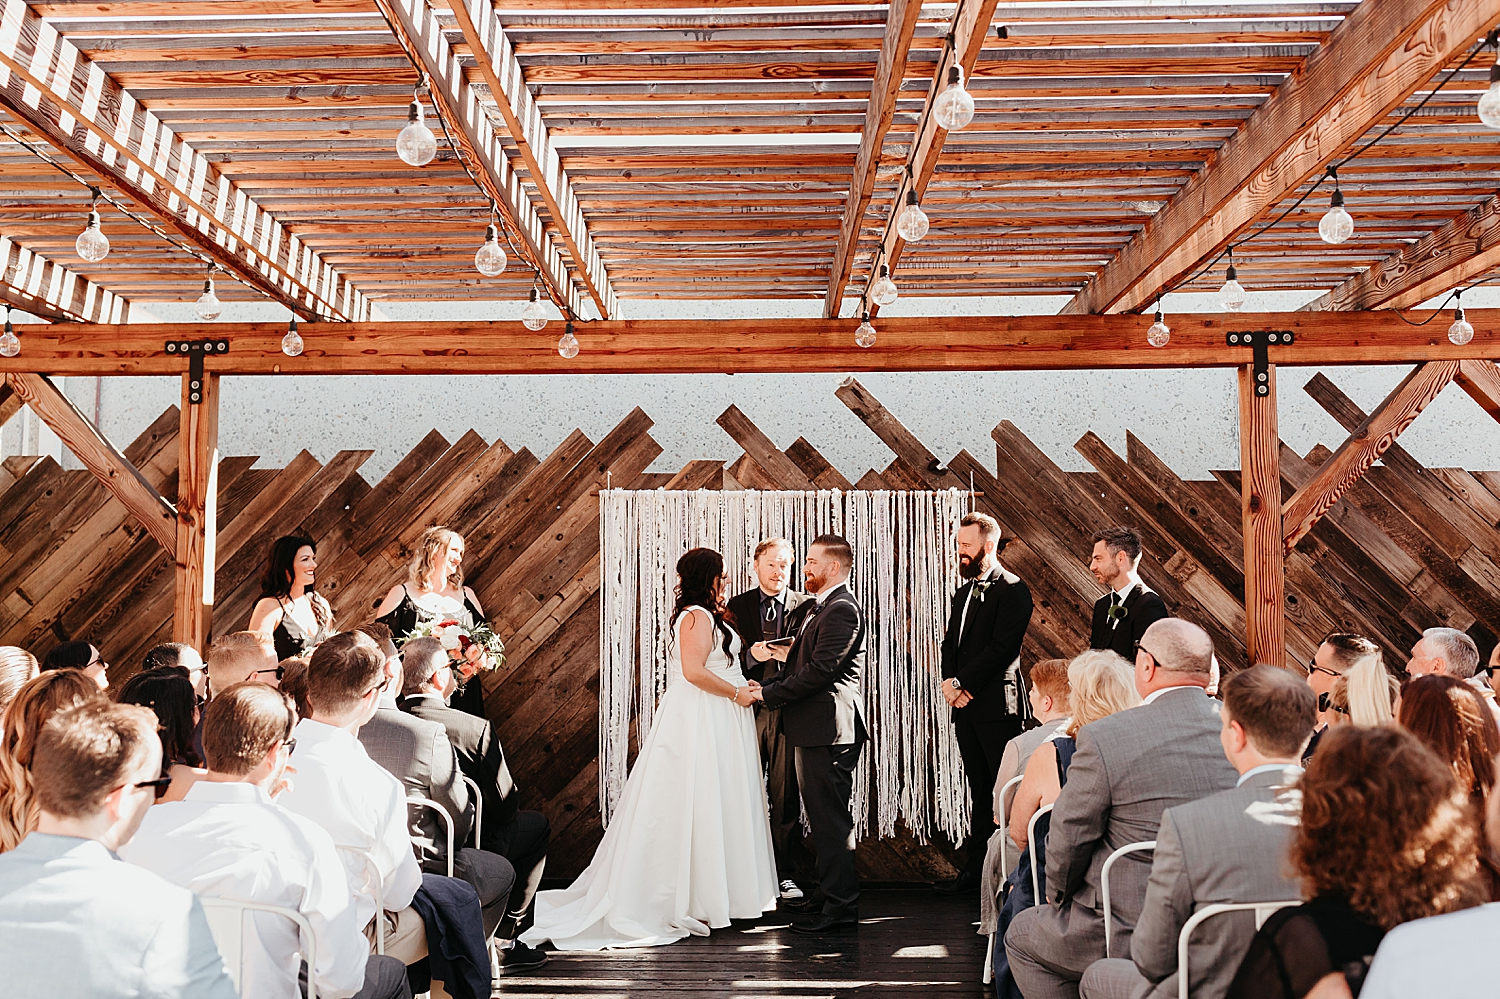 The-Wood-Shed-Booze-Brothers-Wedding-79.jpg